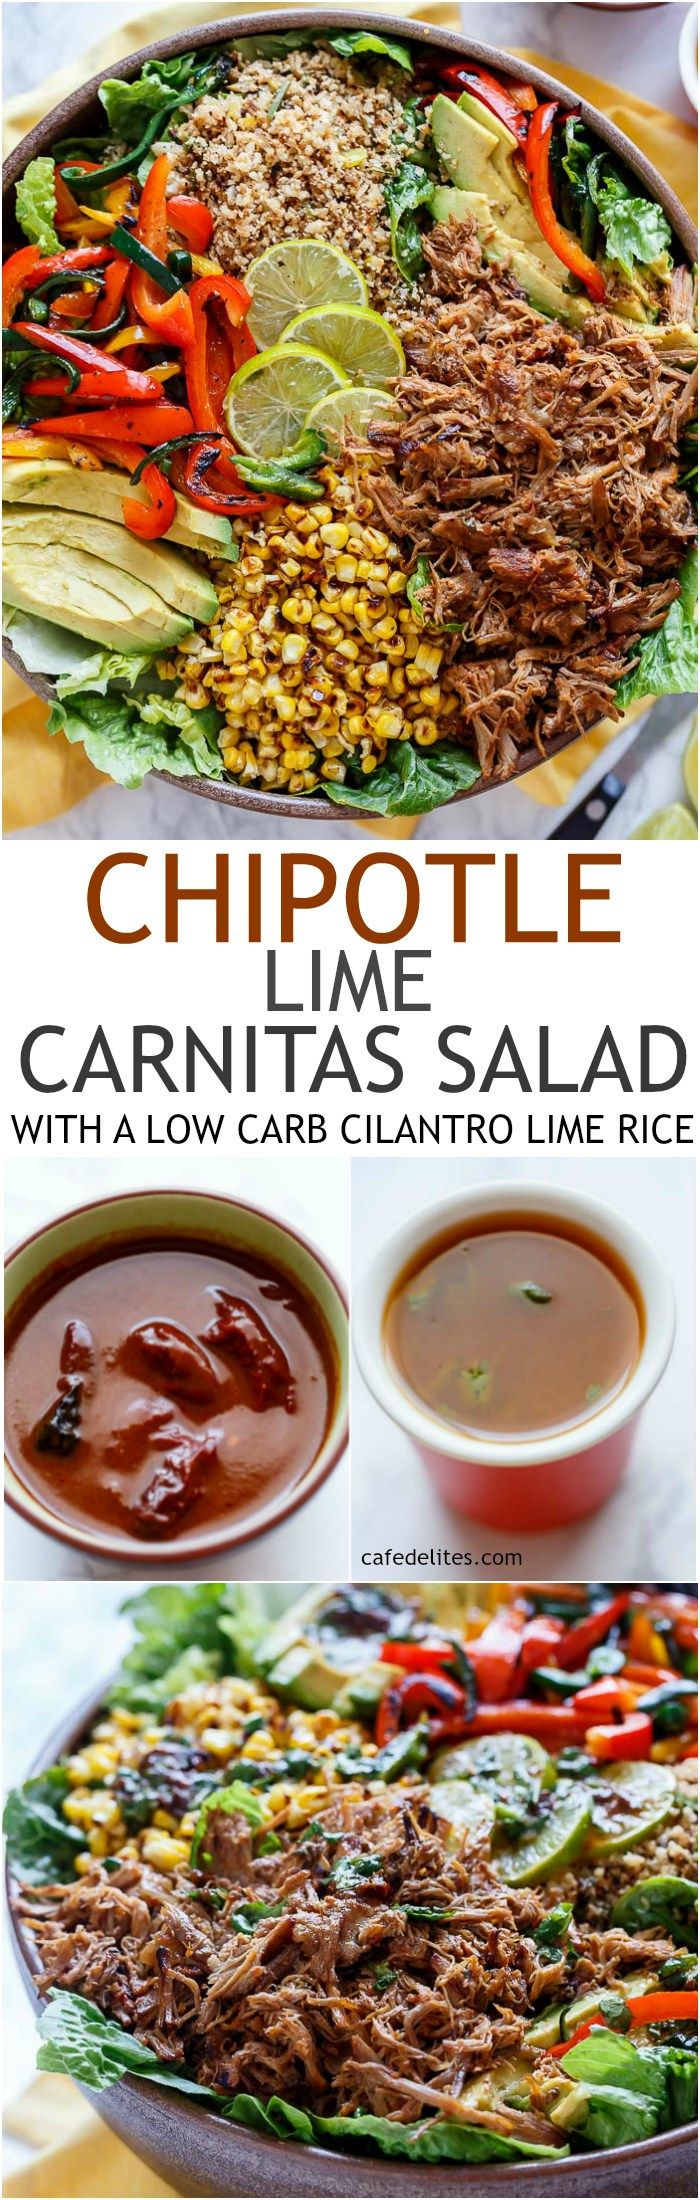 Chipotle Lime Carnitas Salad   Crispy Carnitas in a salad drizzled with an incredible Chipotle Lime Dressing and a low carb Cilantro Lime Rice!   http://cafedelites.com